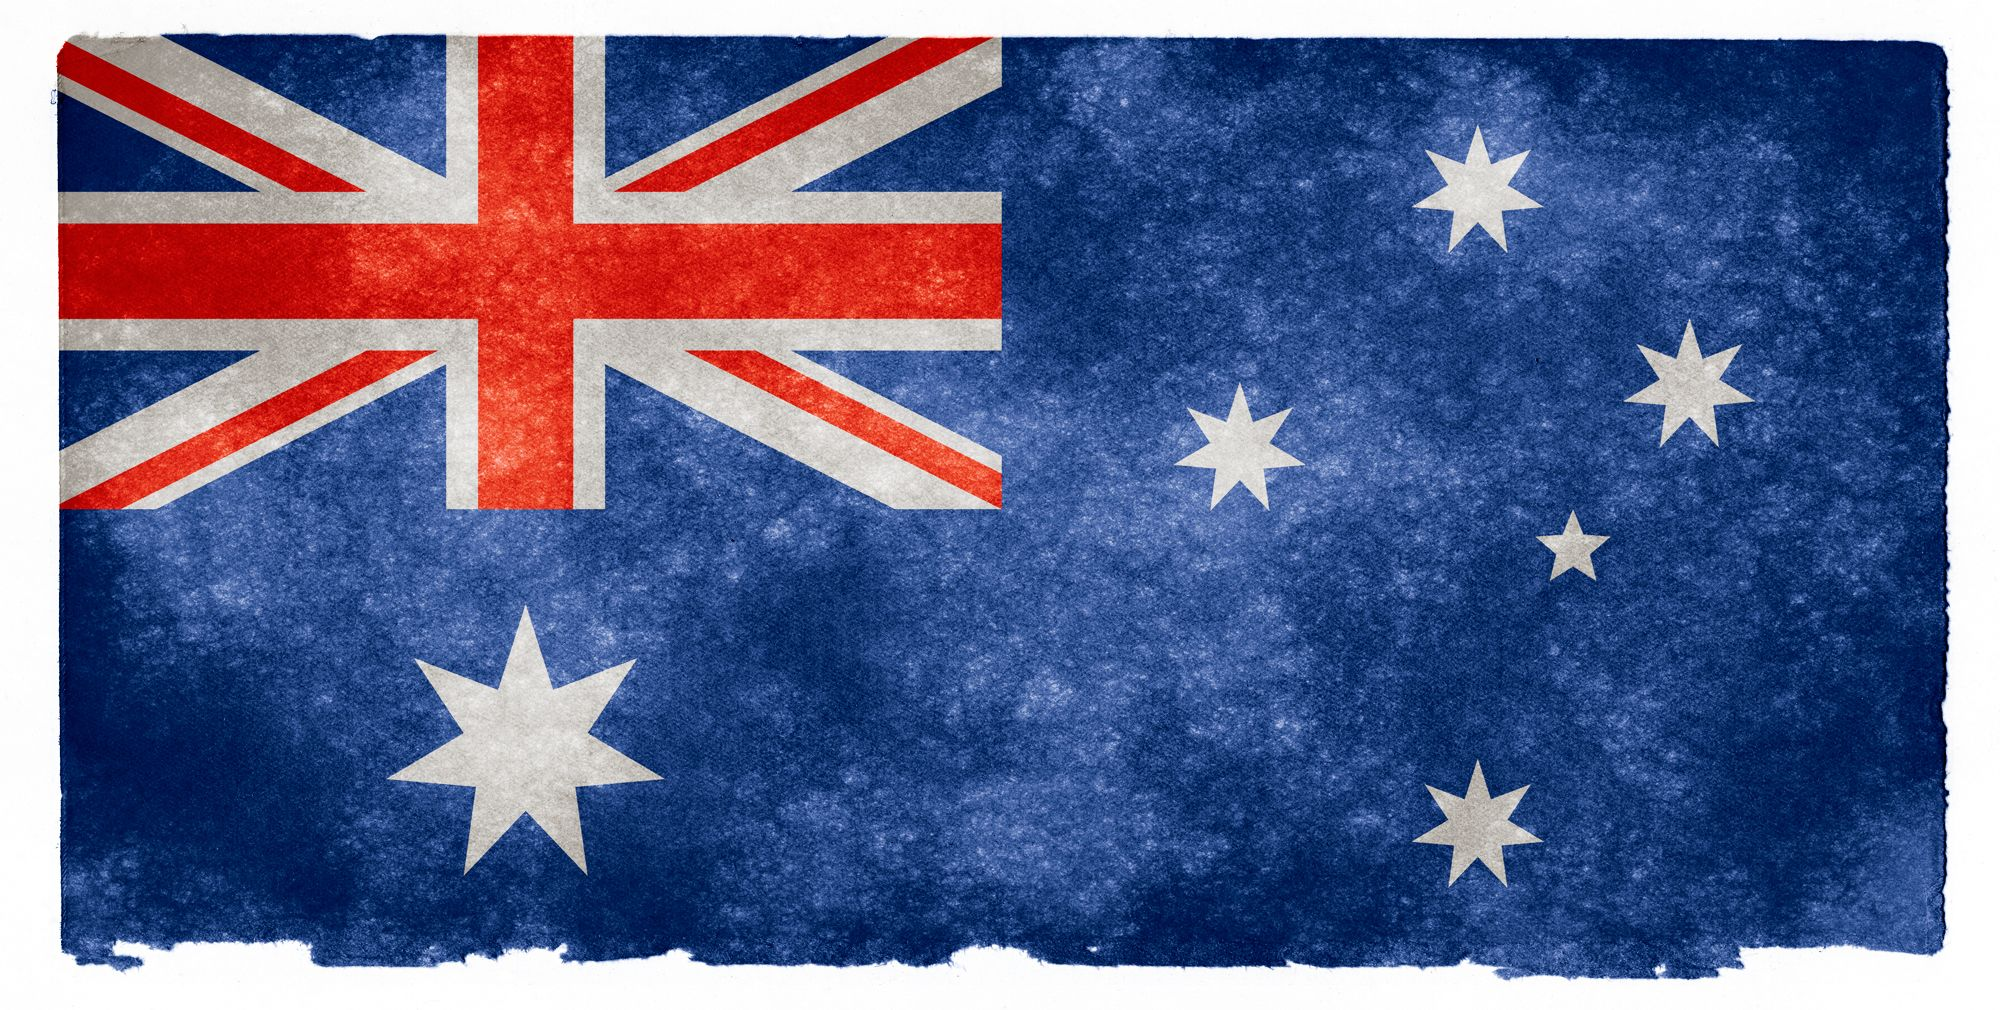 Australia Flag Wallpaper | 2560x1280 | ID:55604 | Wallpapers ...